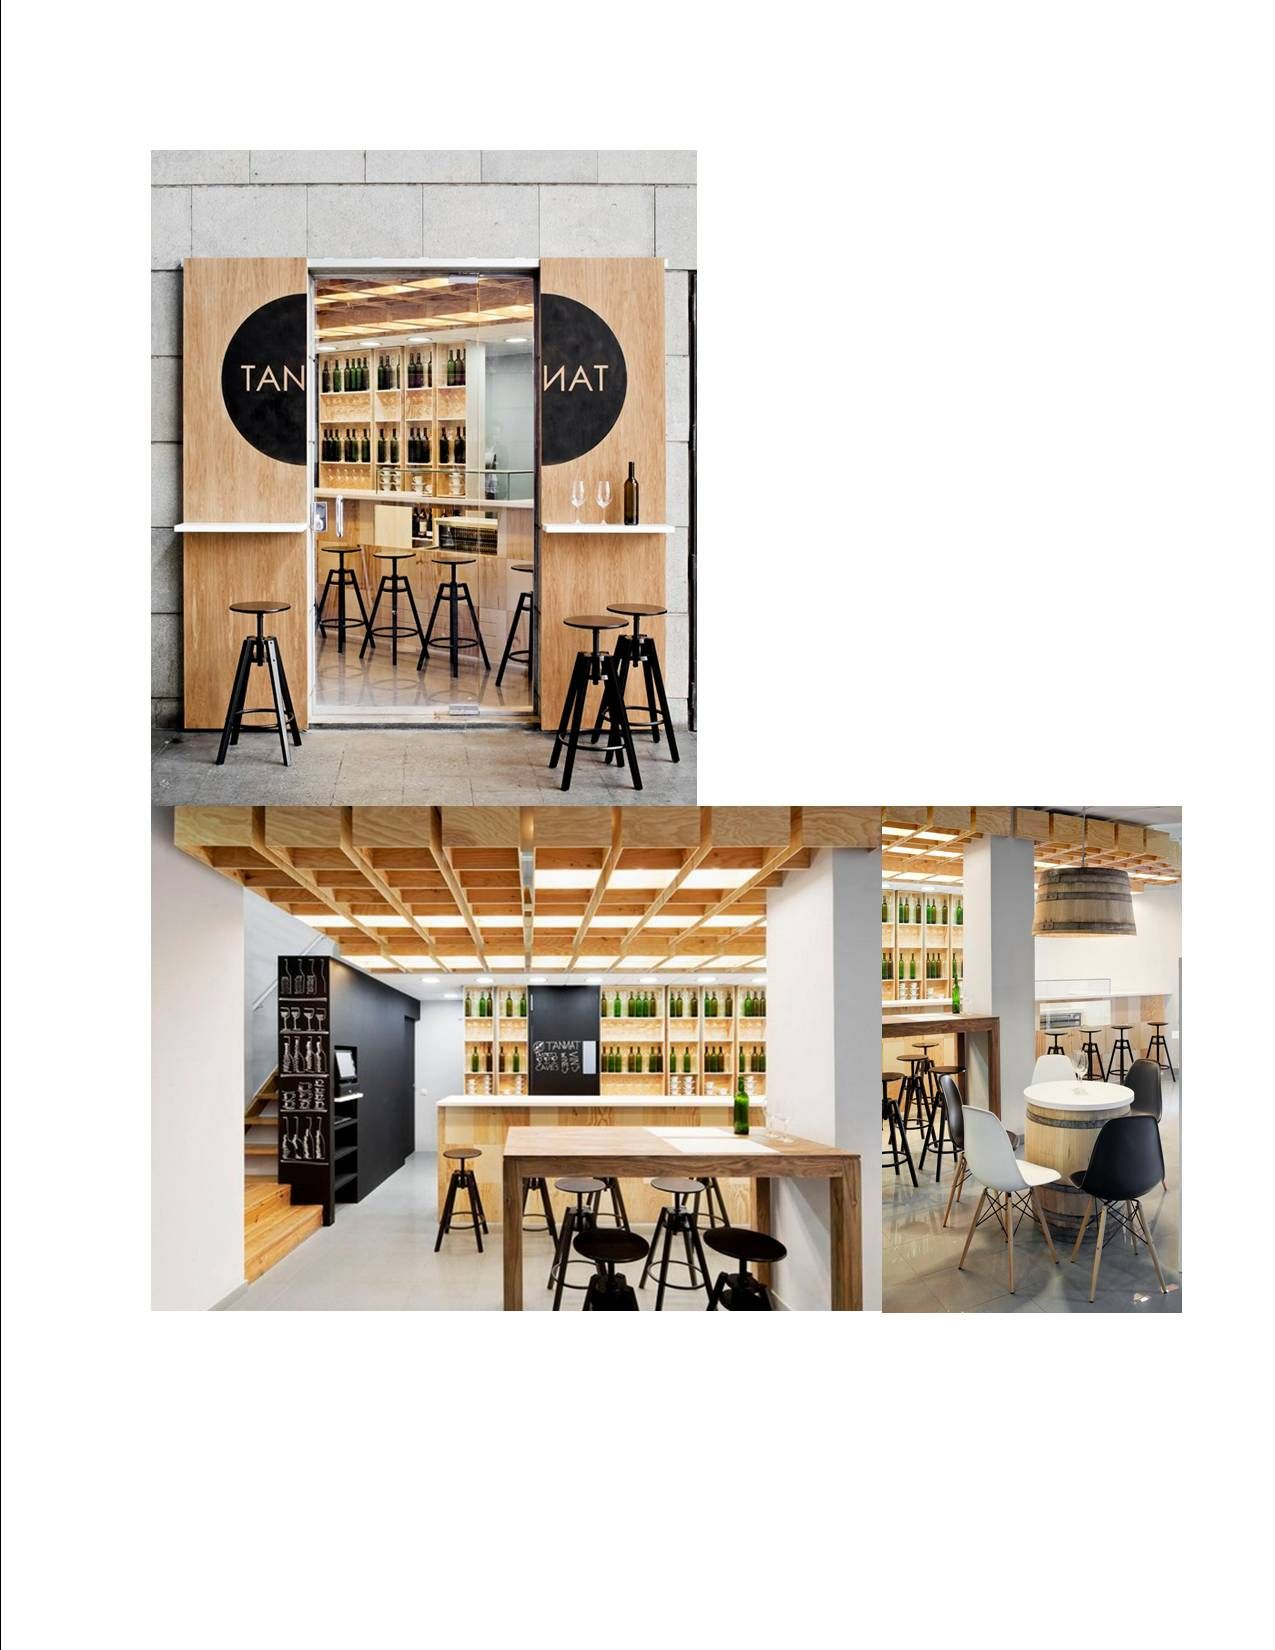 Barcelona, Tannat  beautiful restaurant decor designed by Àbag Arquitectura. Look what a mirrored door can do. Really special! PopUpRepublic.com